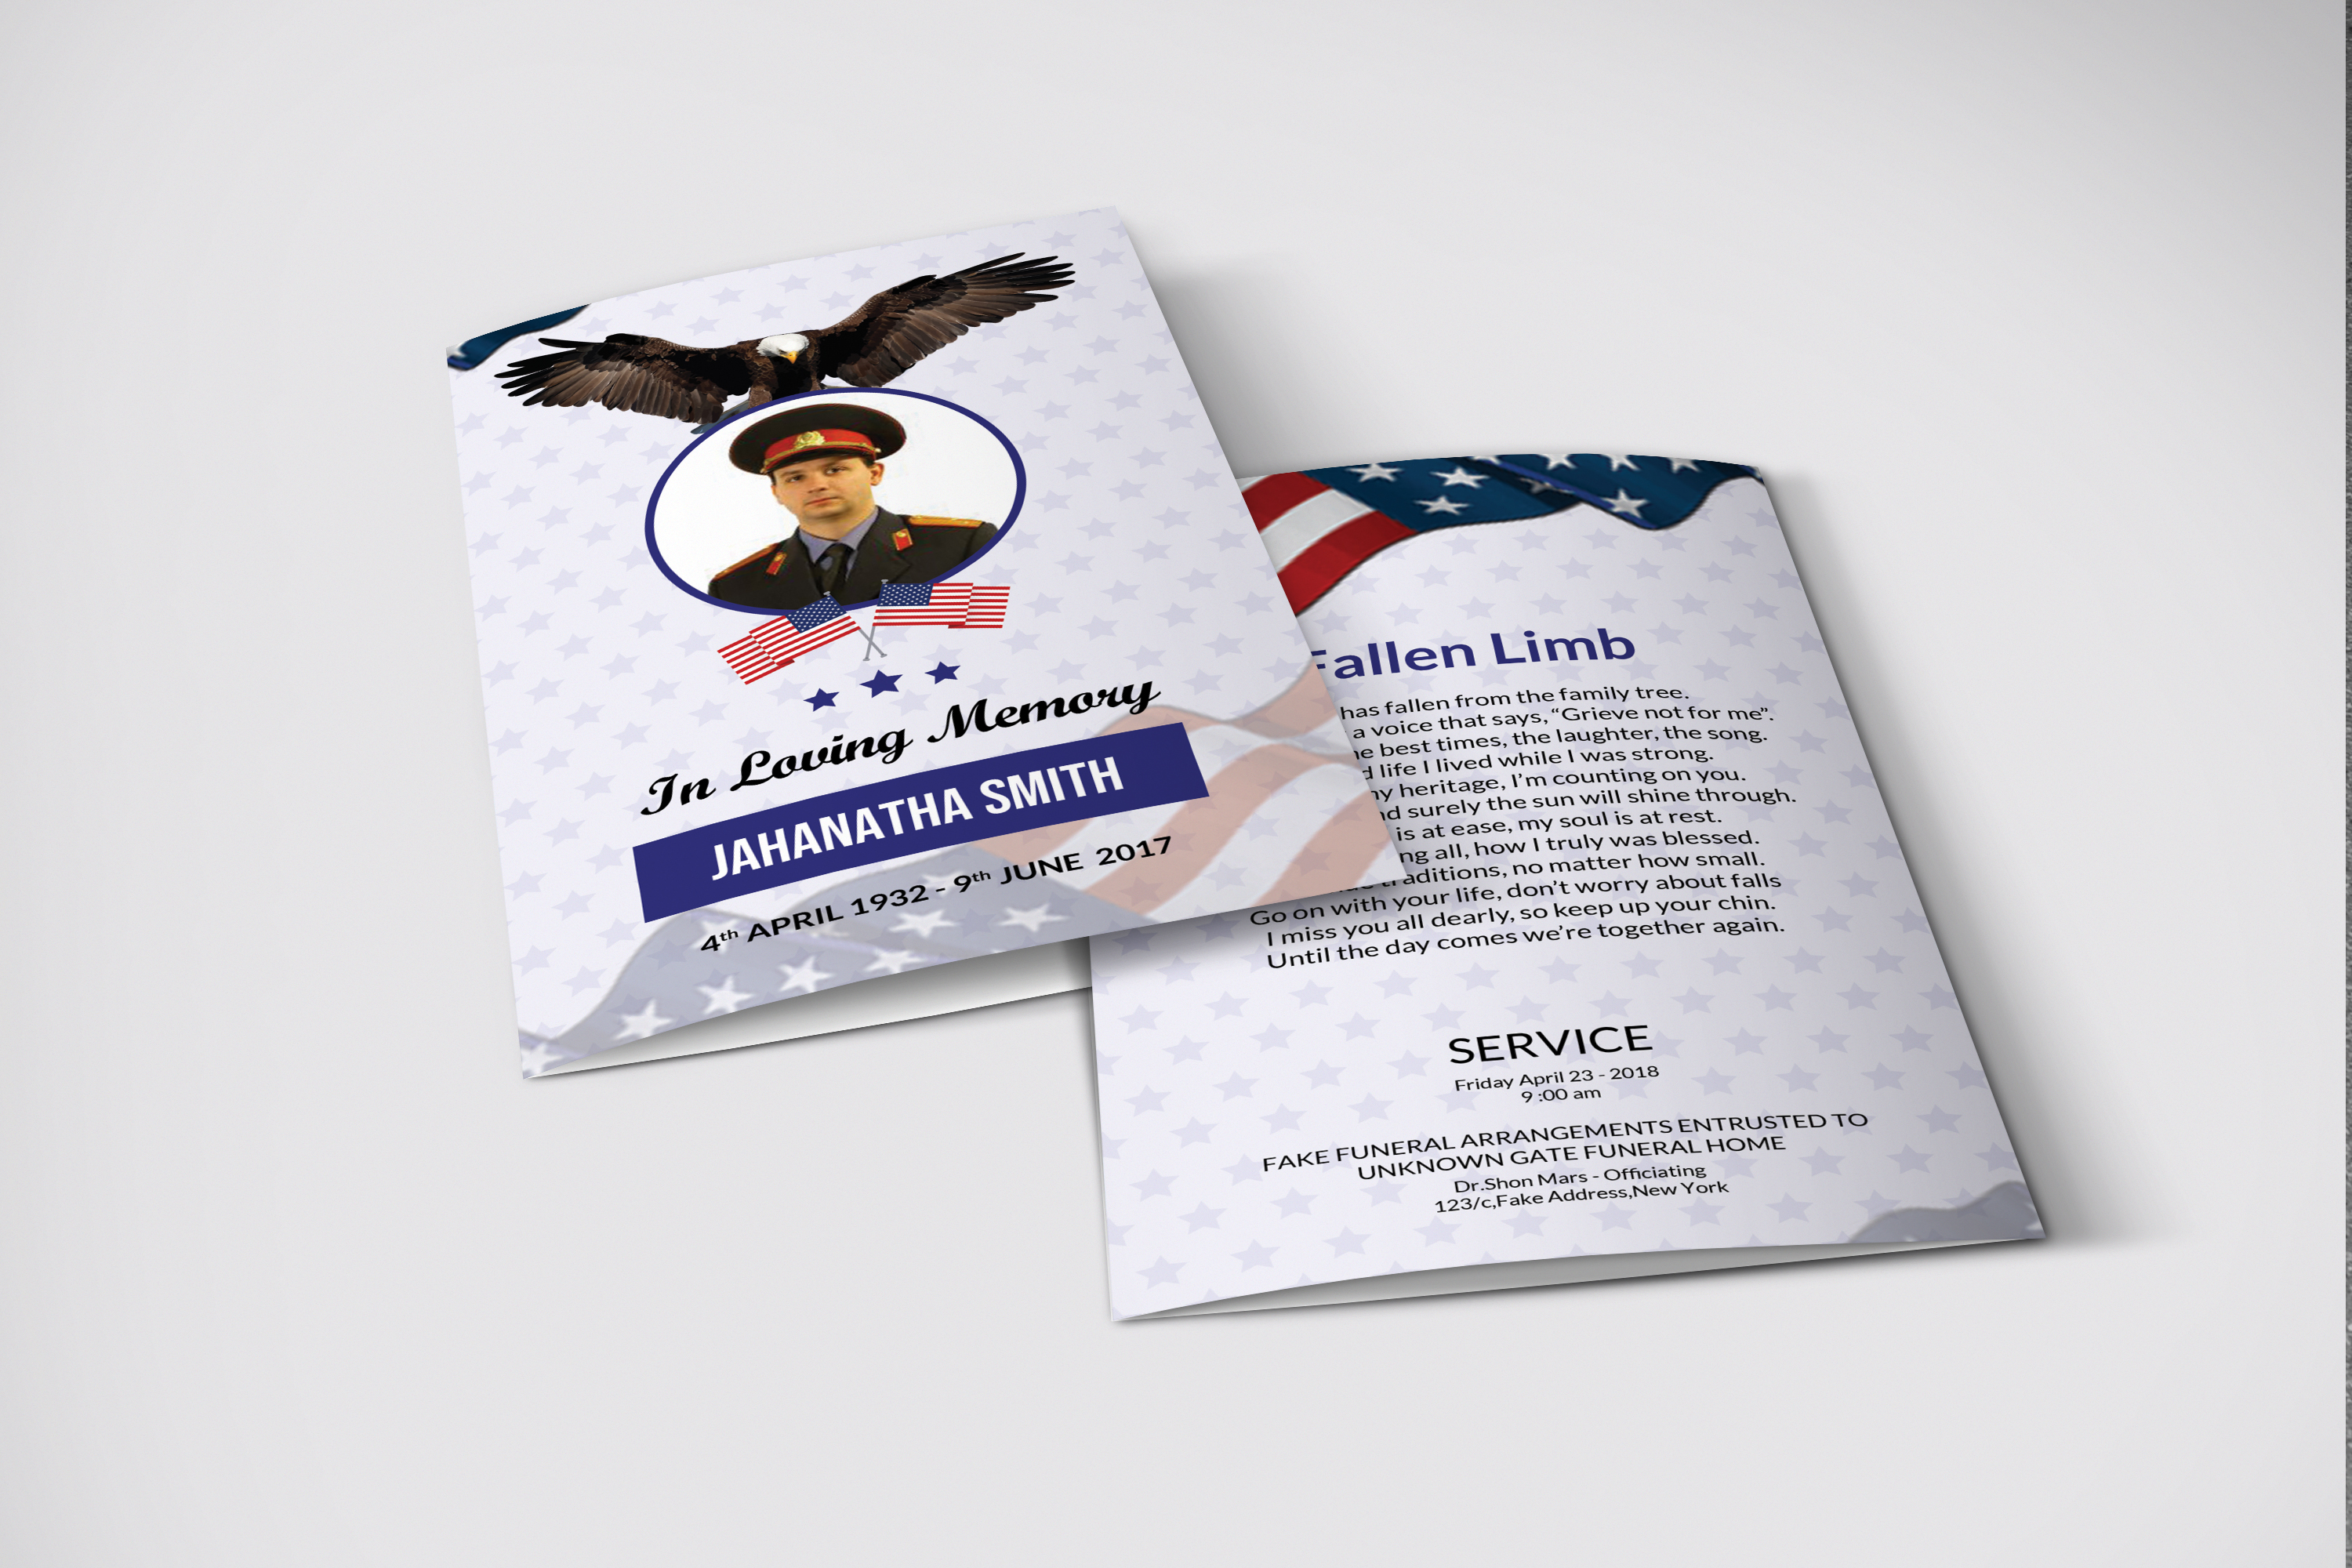 Funeral Program Template Military Army example image 3